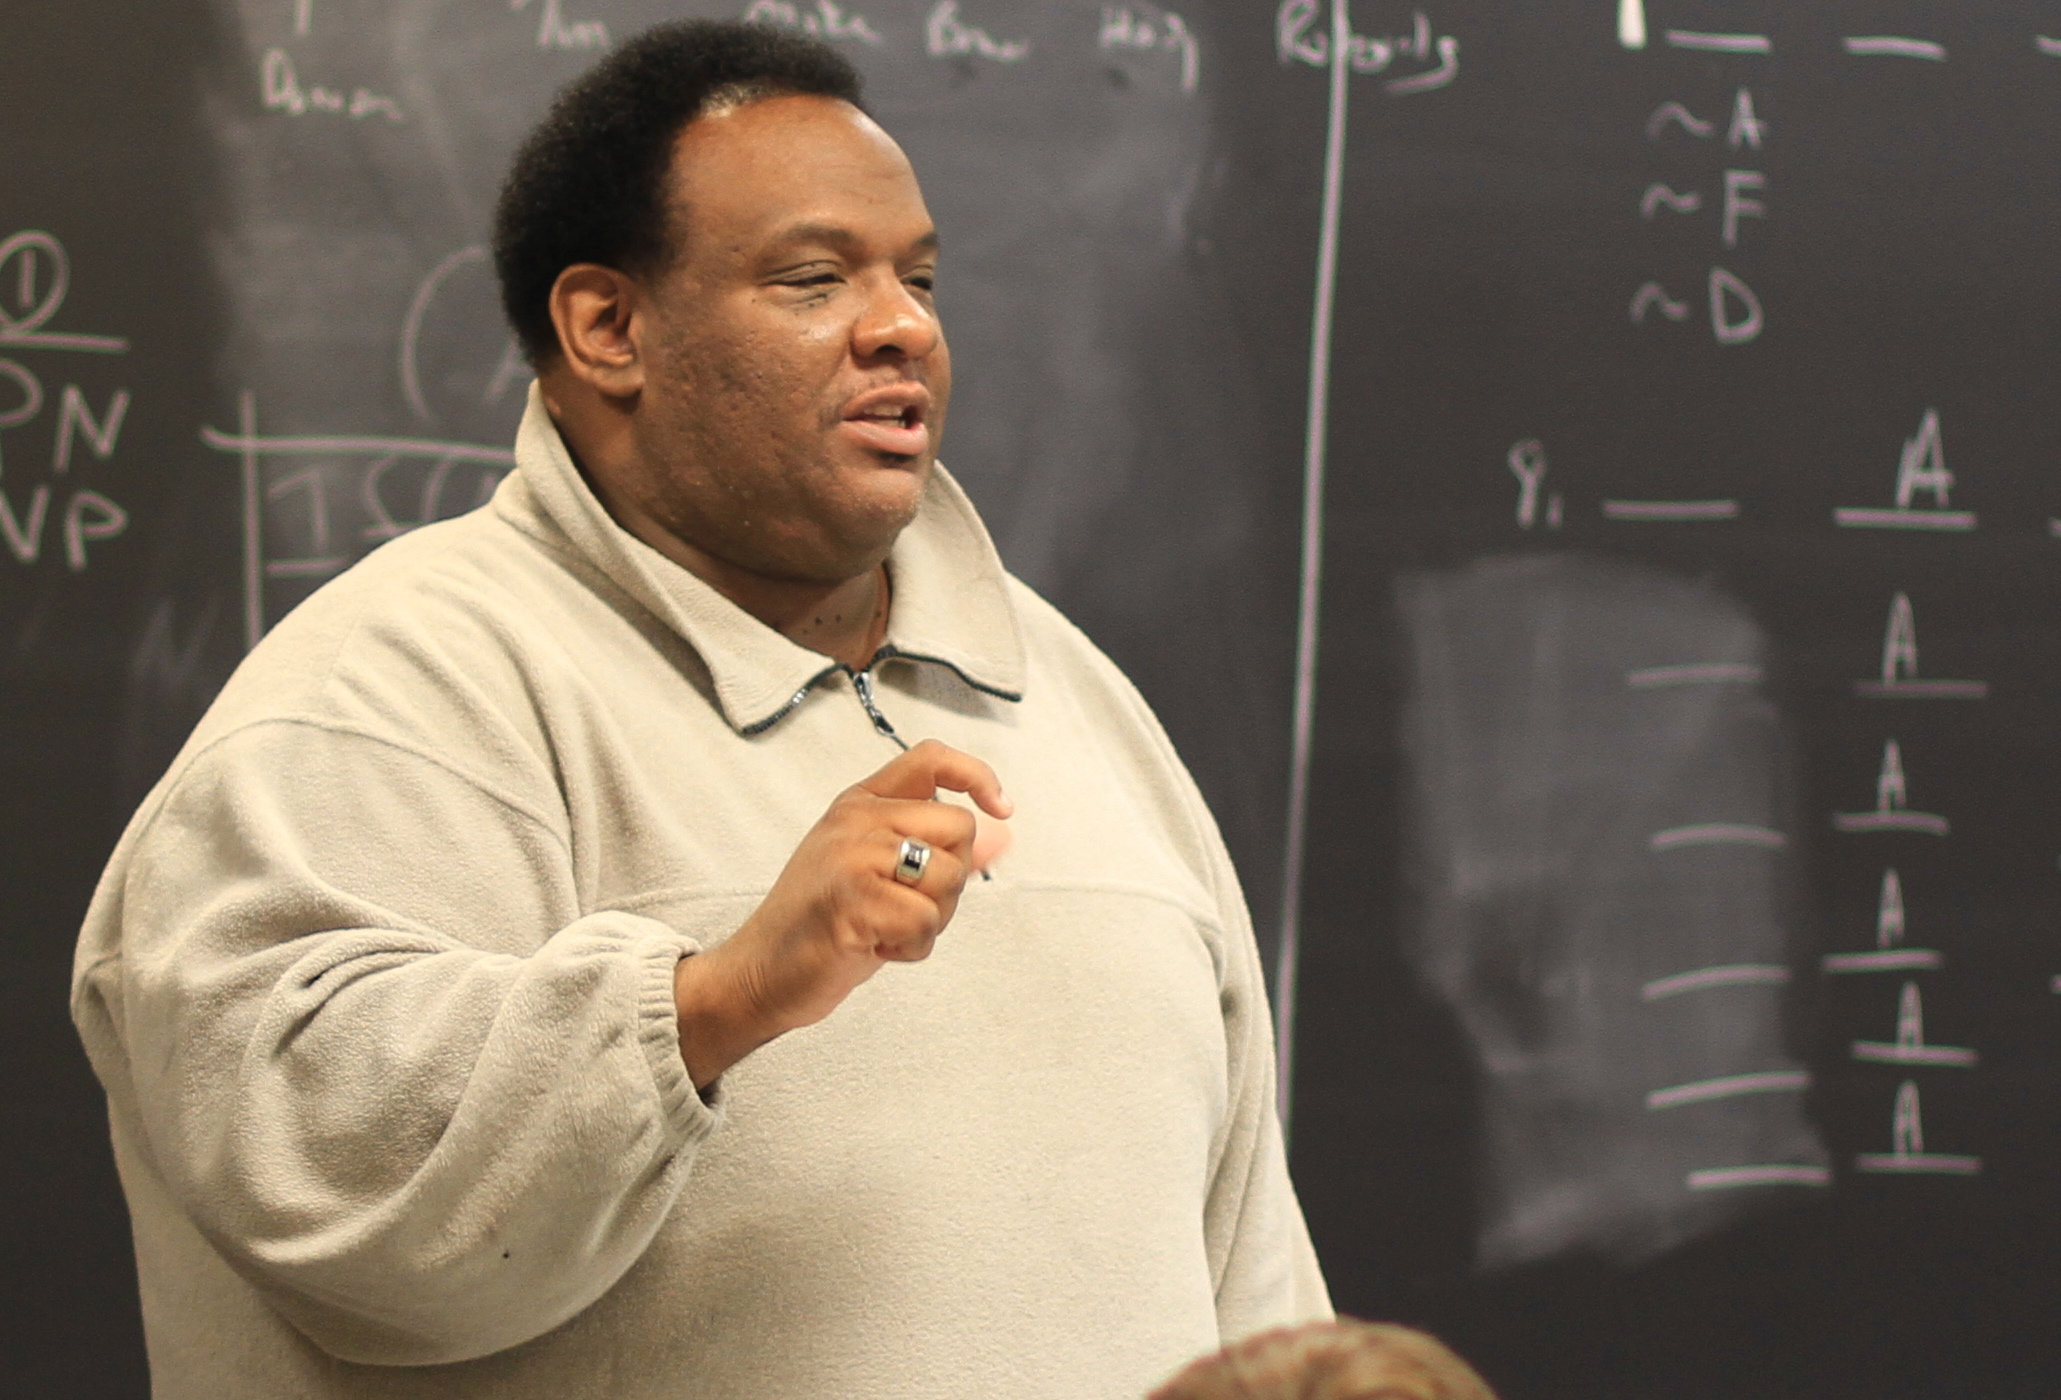 Dr. Julius Bailey in logic class, February 2012